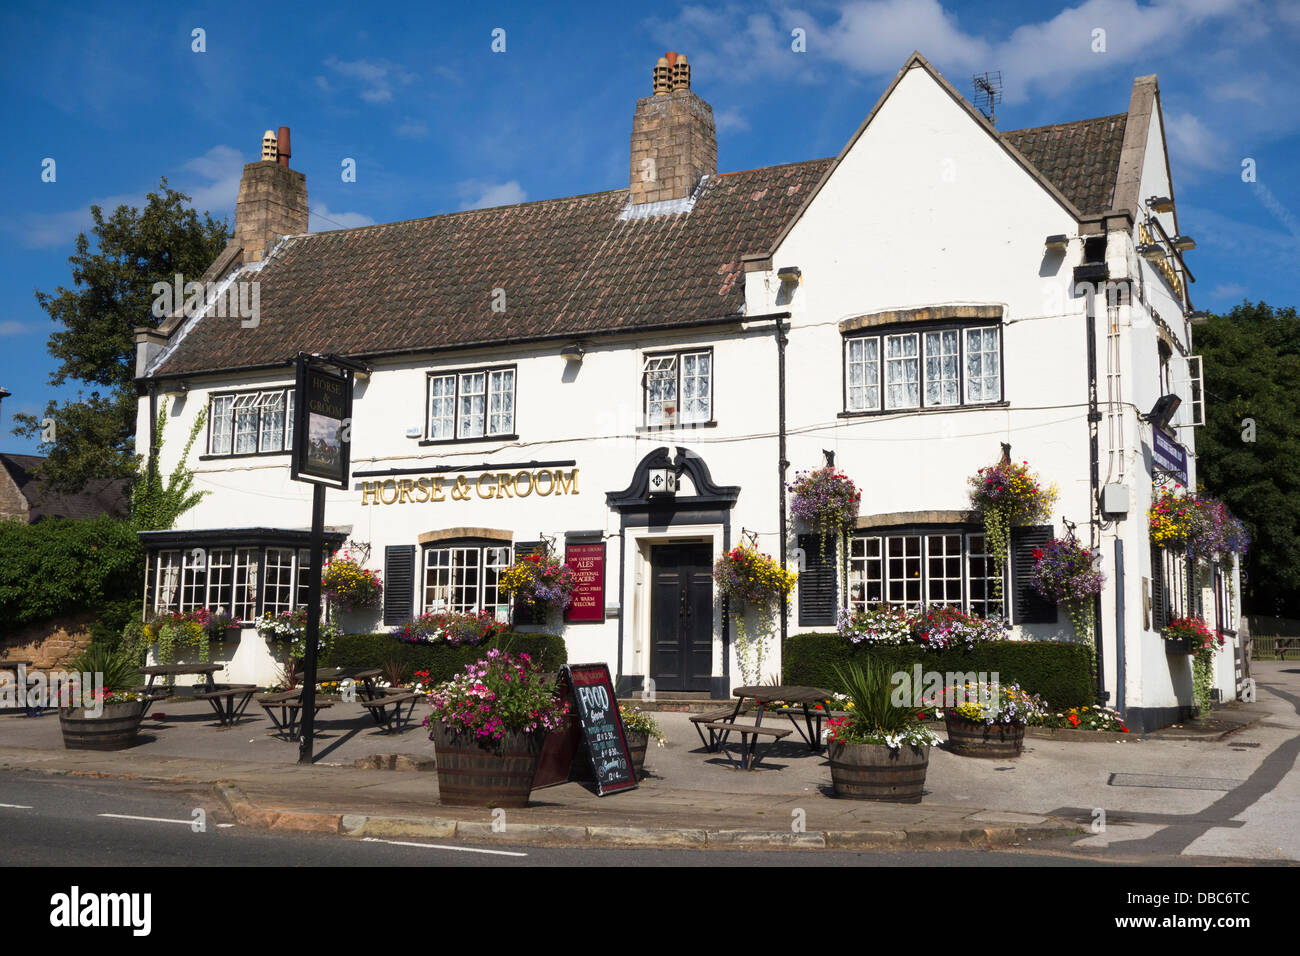 The Horse & Groom public house, Linby, Nottinghamshire, England, U.K. - Stock Image